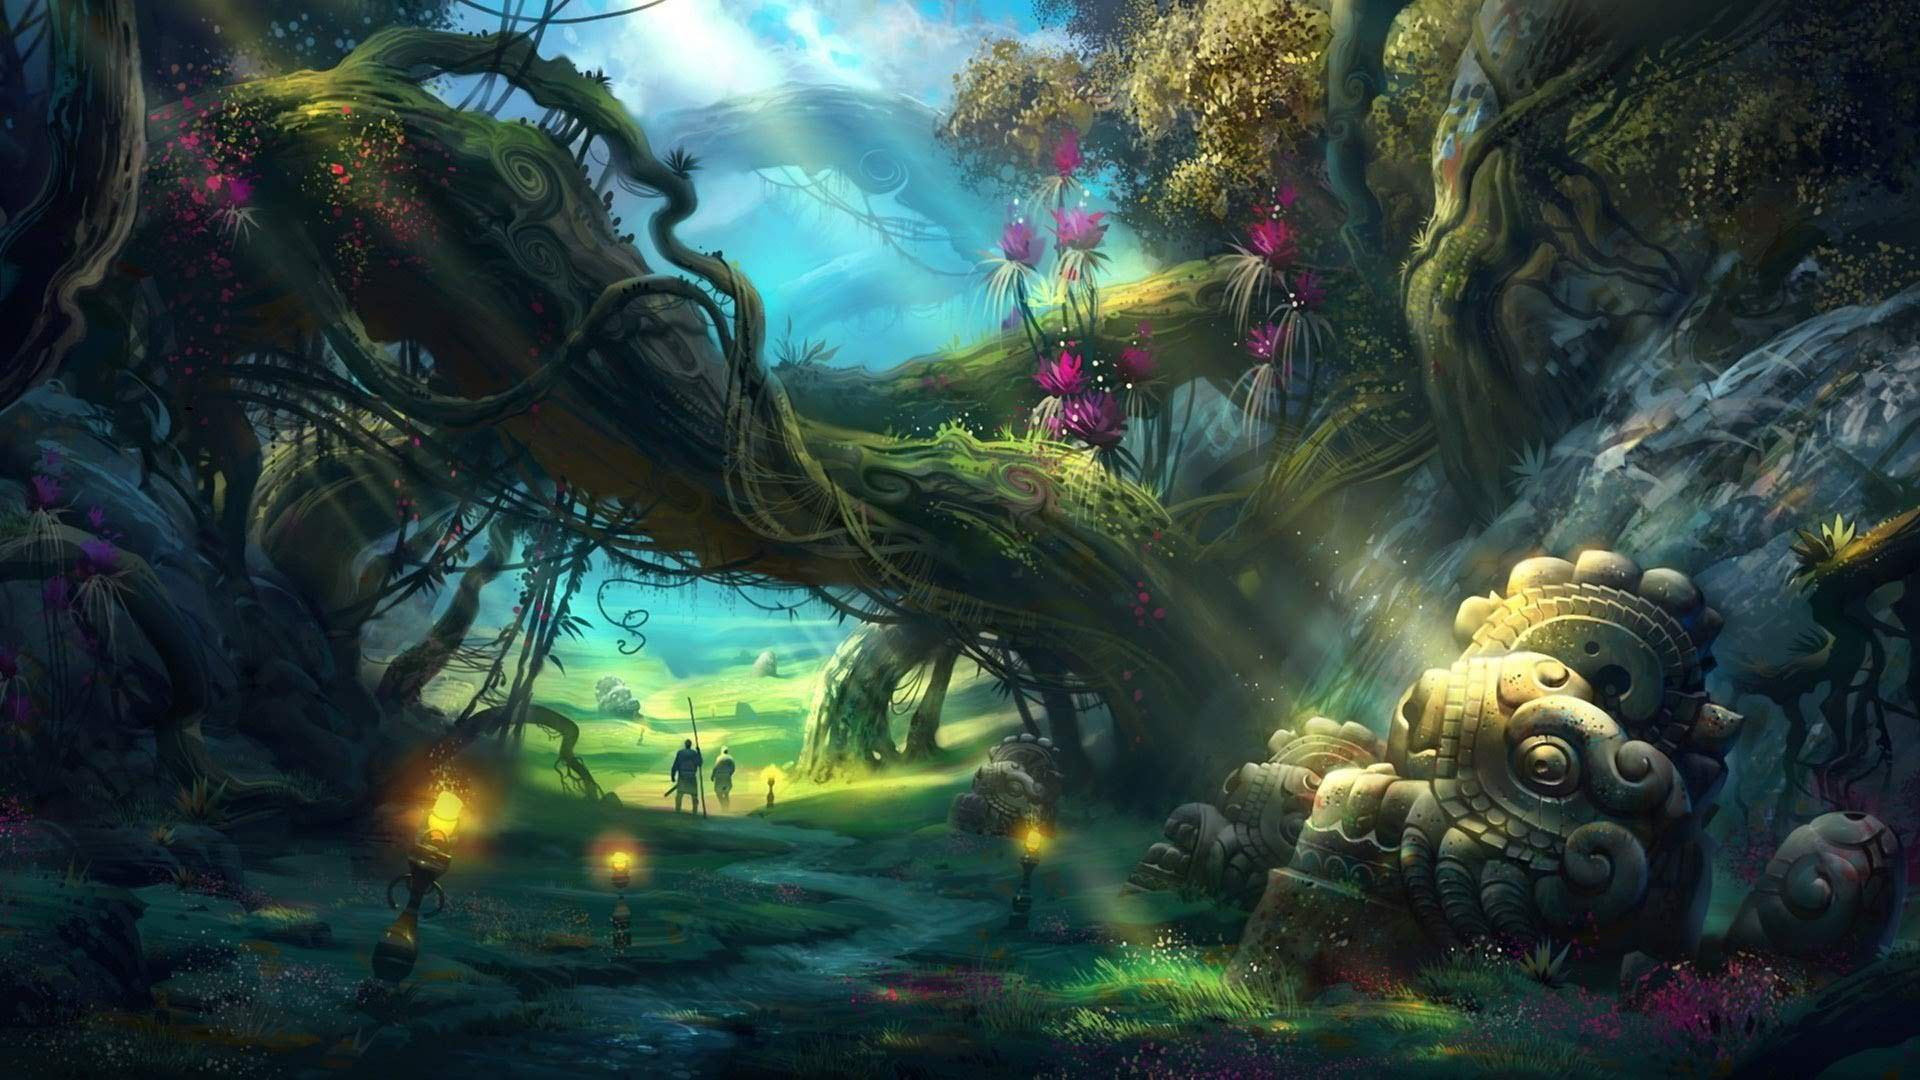 Adventures The Enchanted Forest Widescreen Wallpaper Jpeg 1920 1080 Mystical Forest Magic Forest Magical Forest